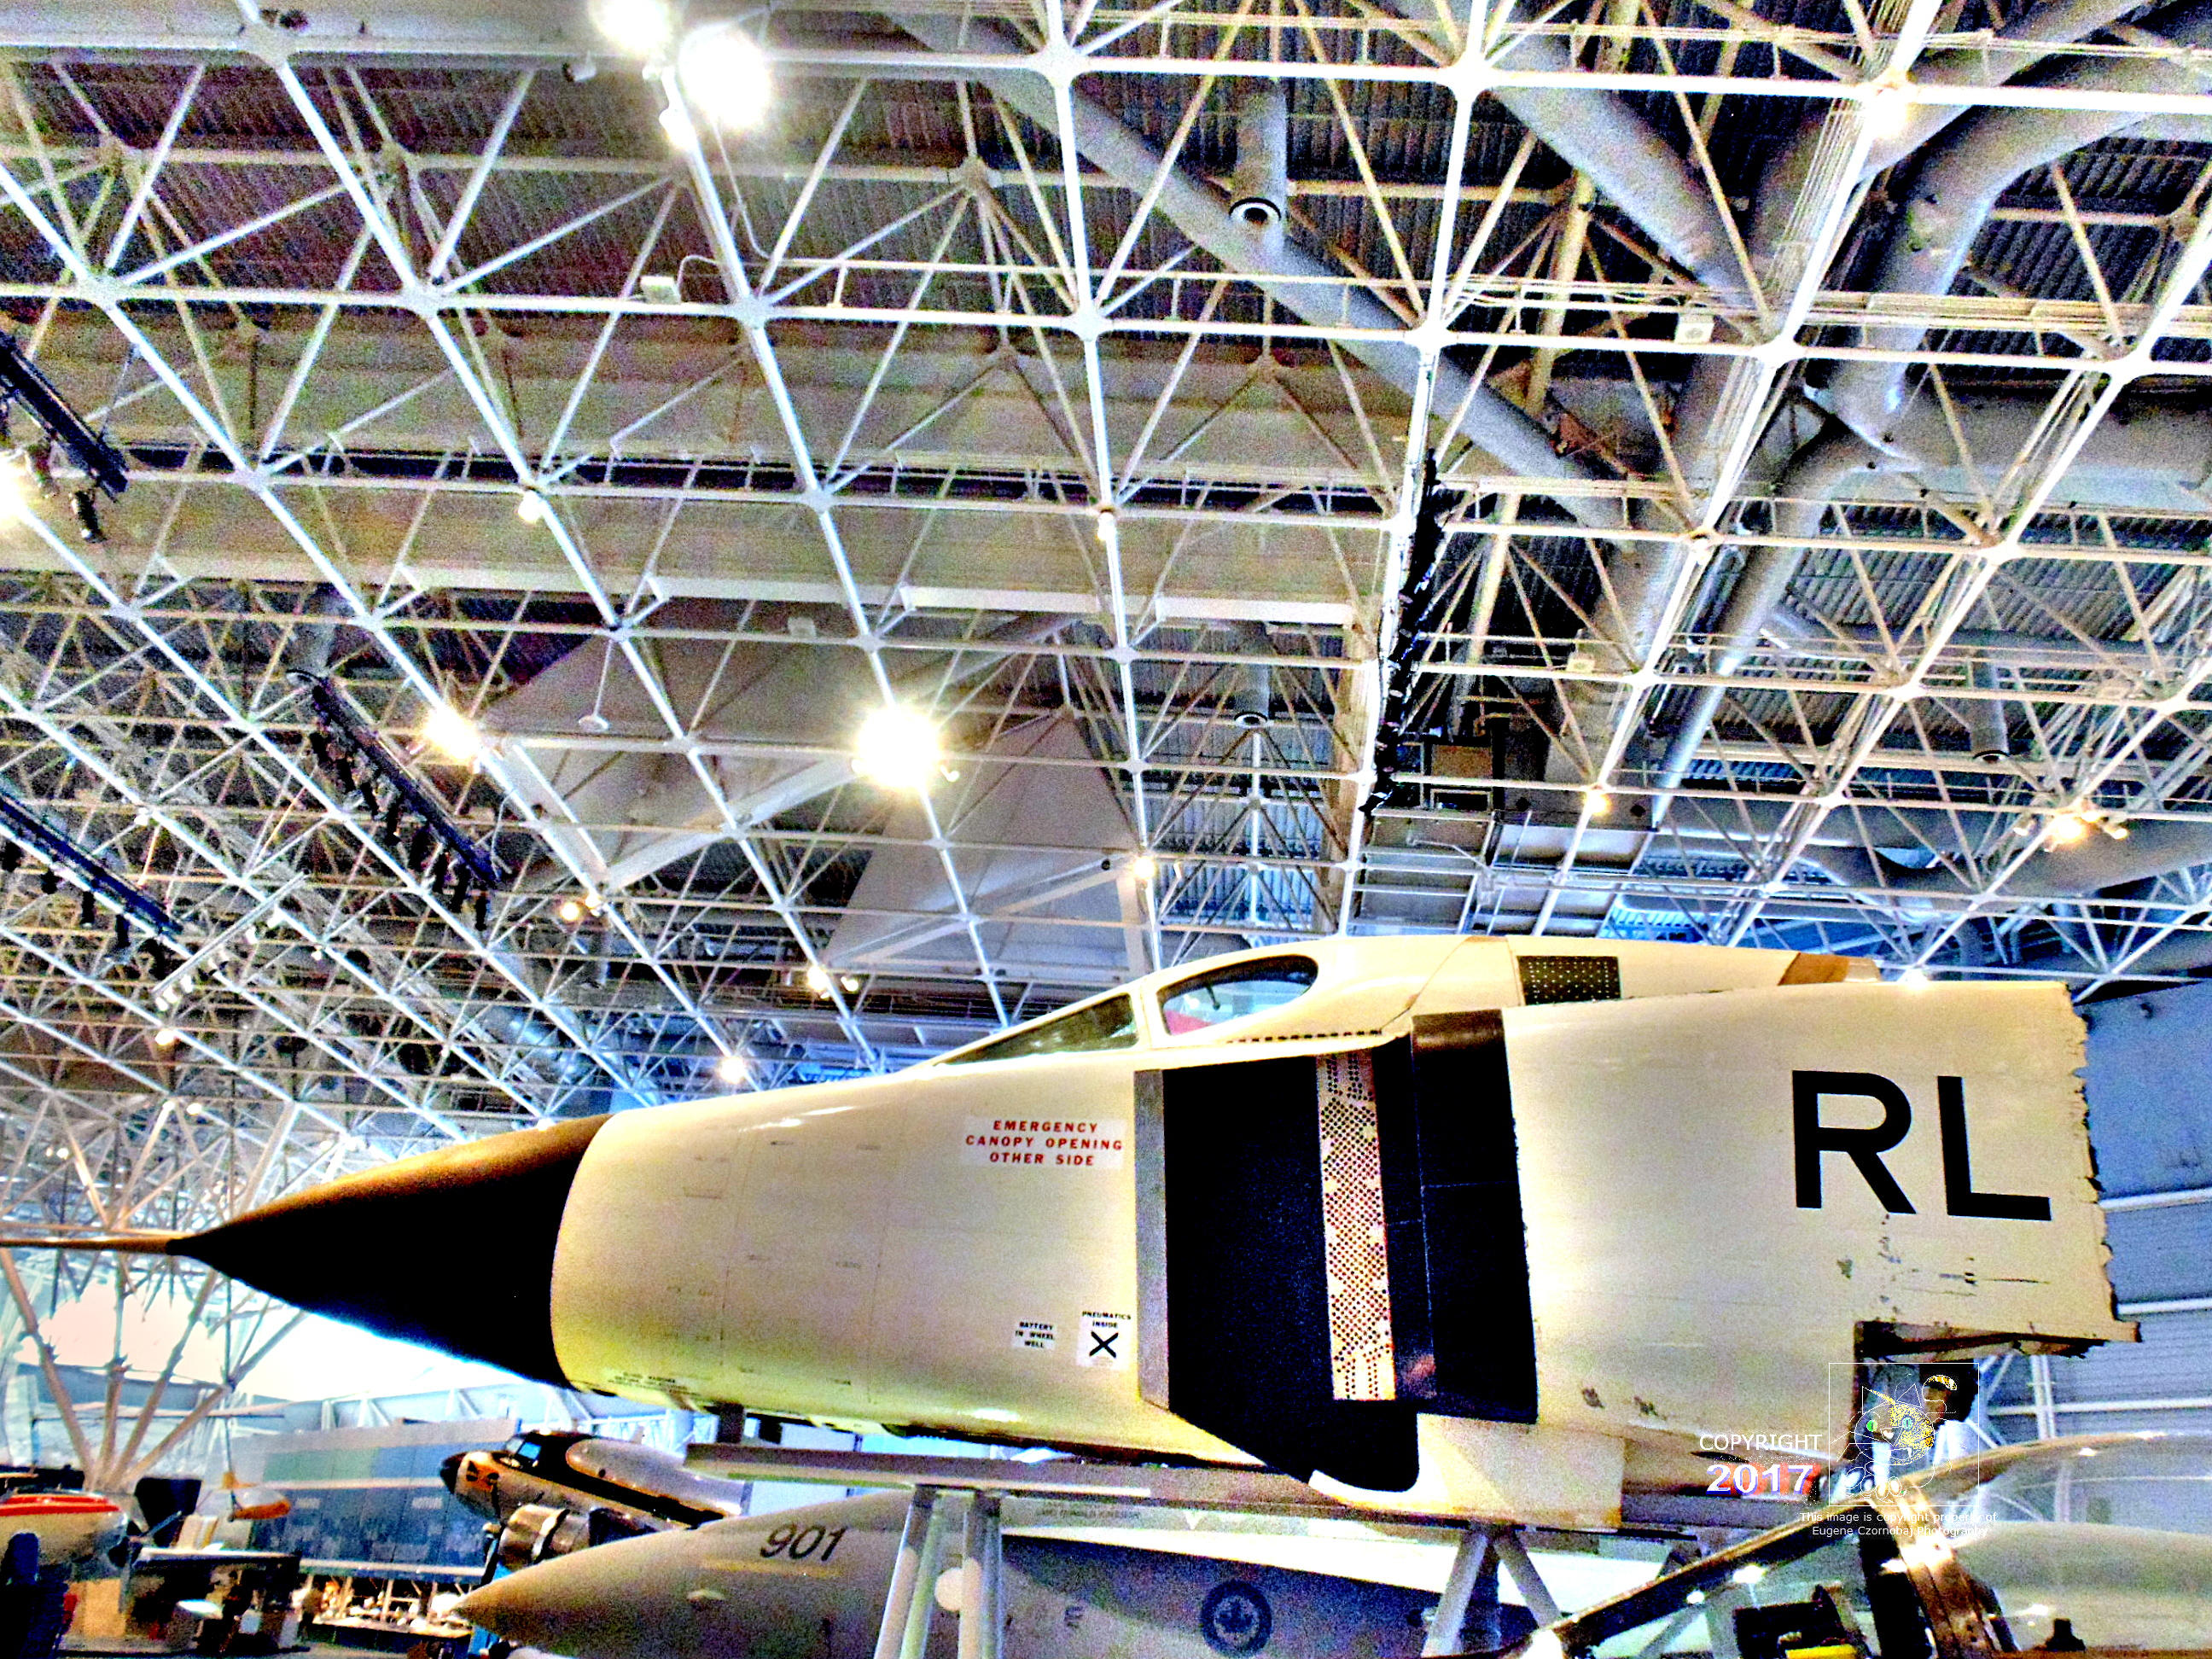 Popular legend has it that Diefenbaker Conservative government were wrong cancelling Avro Arrow.